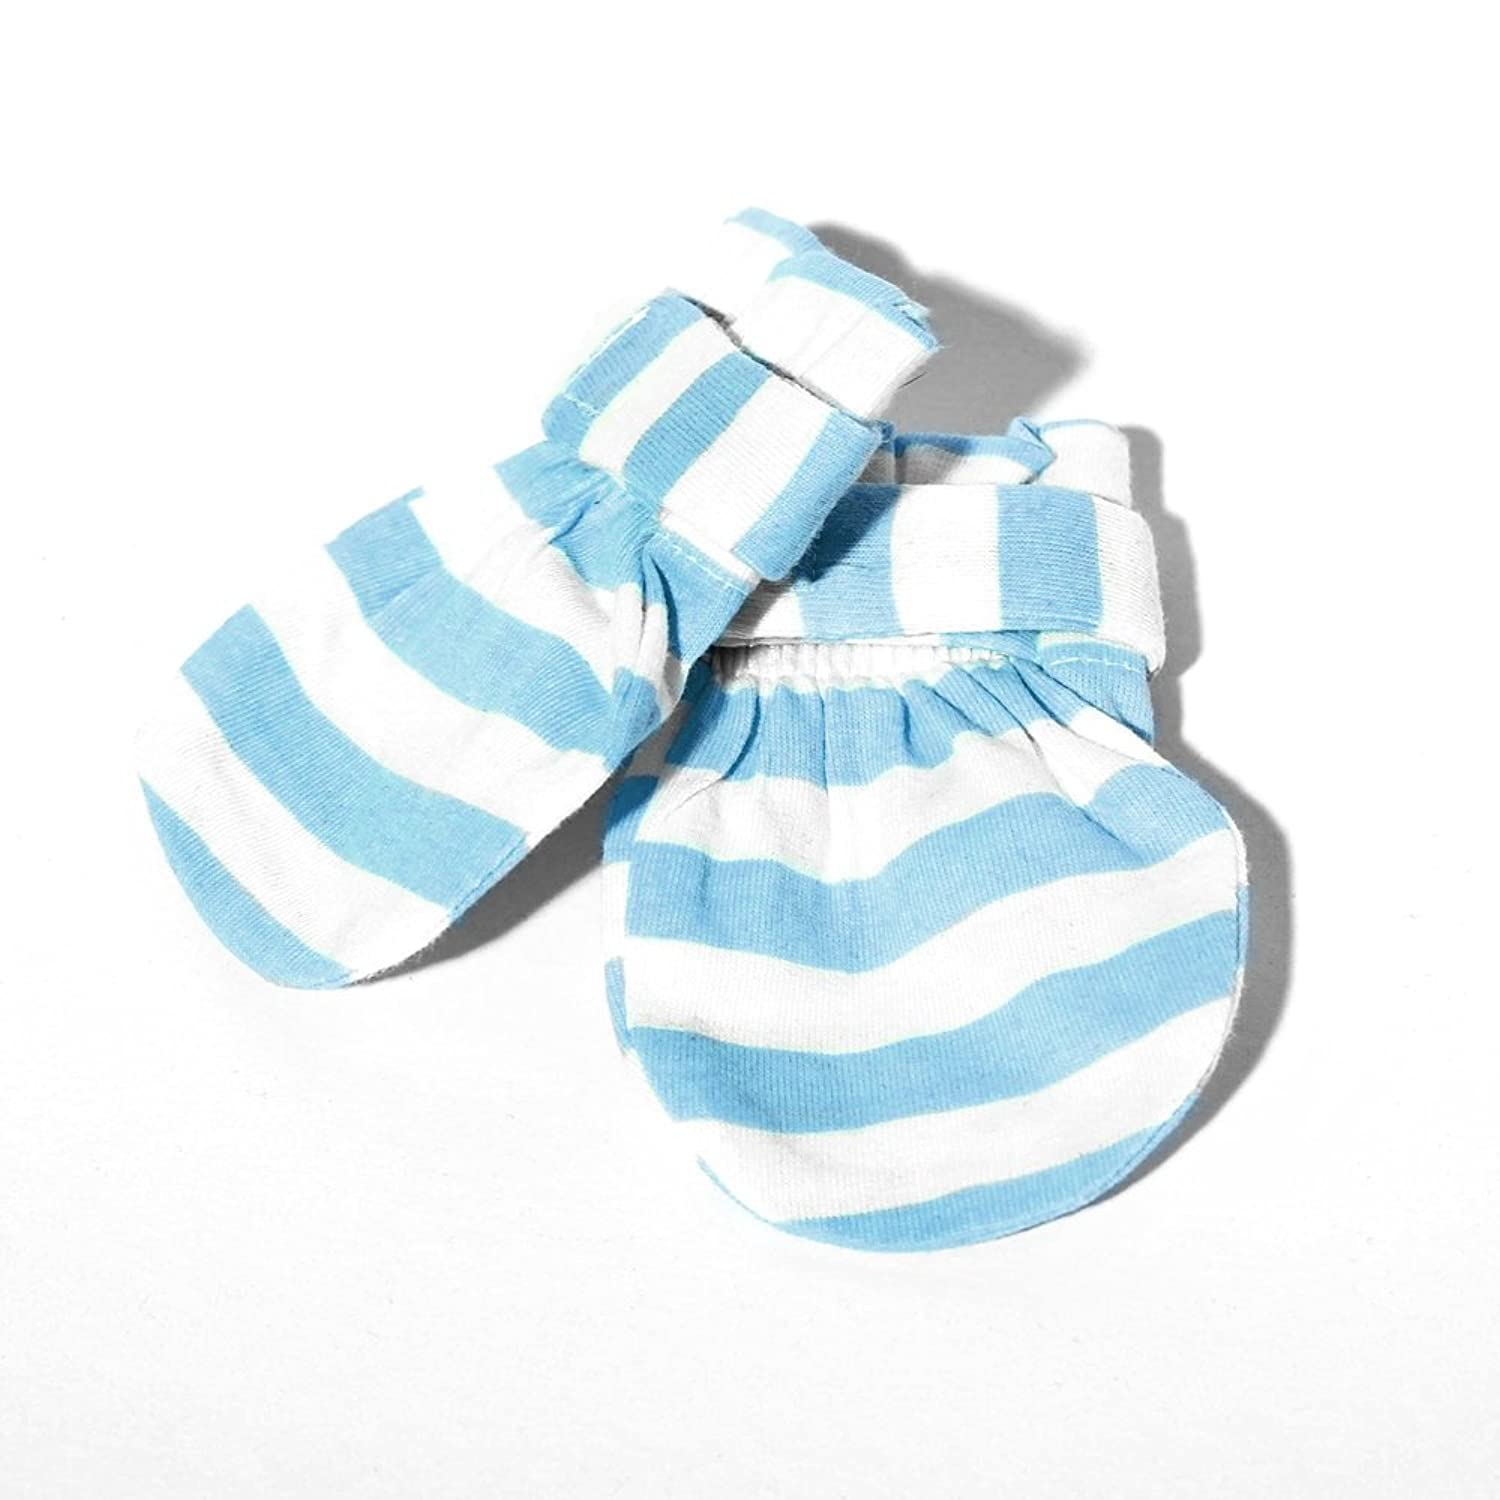 Amazon baby mittens blue 100 cotton baby mittens no amazon baby mittens blue 100 cotton baby mittens no scratch stop all unwanted scratches unique strap that keeps mittens in place and your jeuxipadfo Image collections